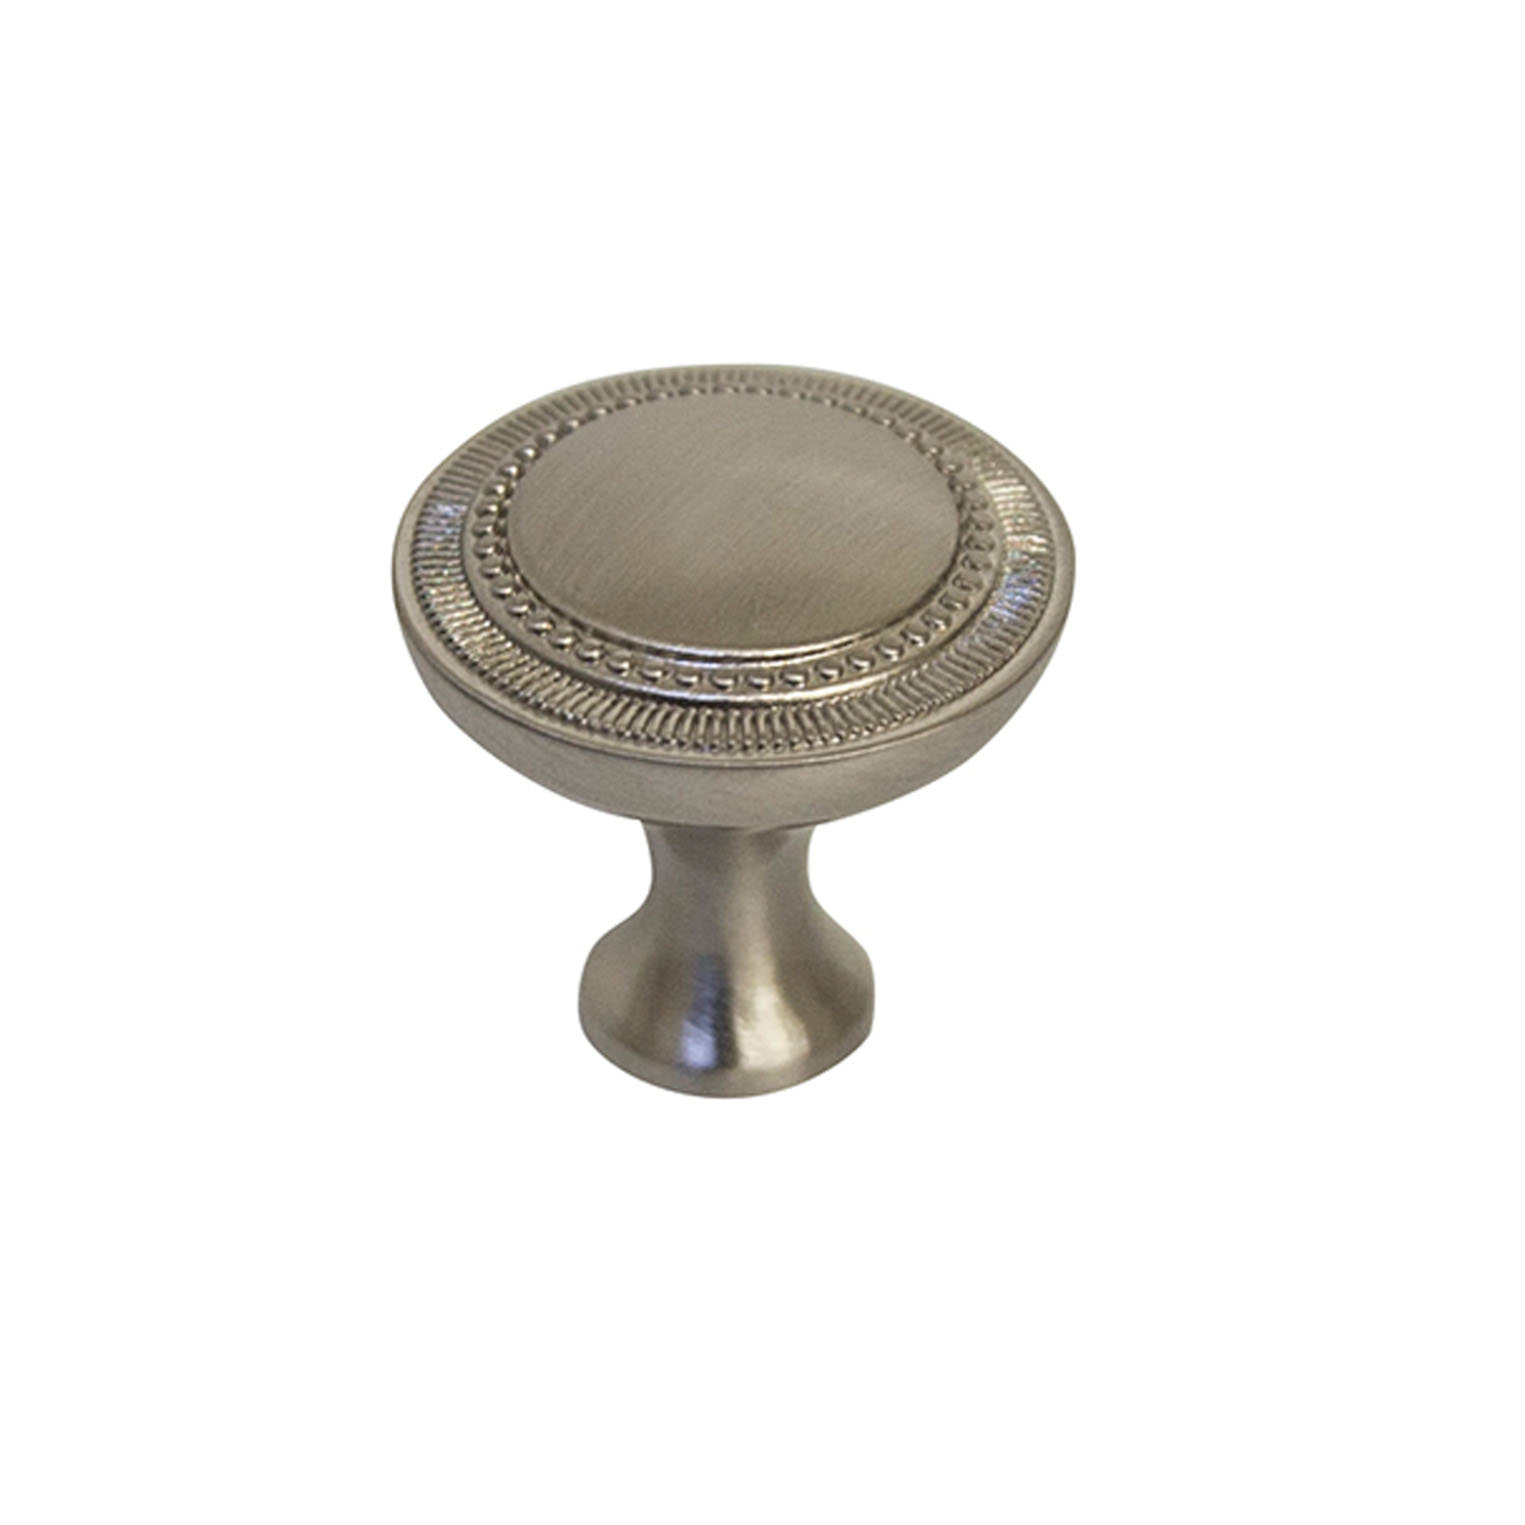 brushed nickel kitchen hardware anti fatigue mats design house 205203 regal cabinet knob